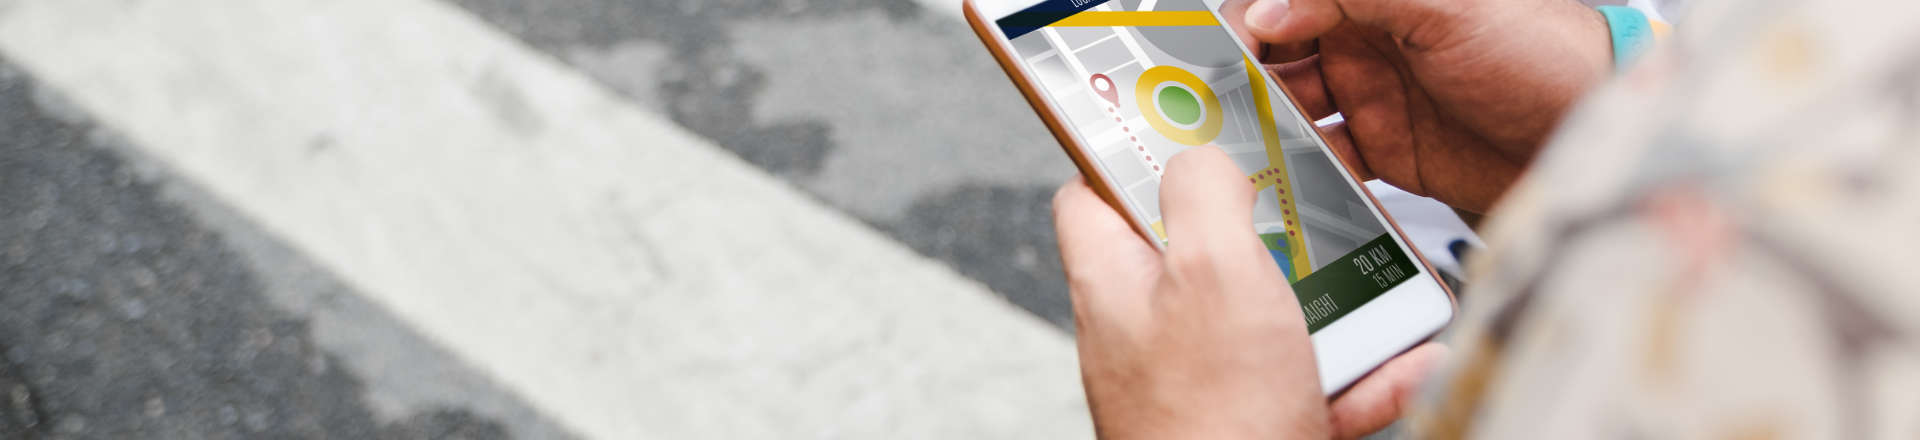 person checking location on map in his smartphone